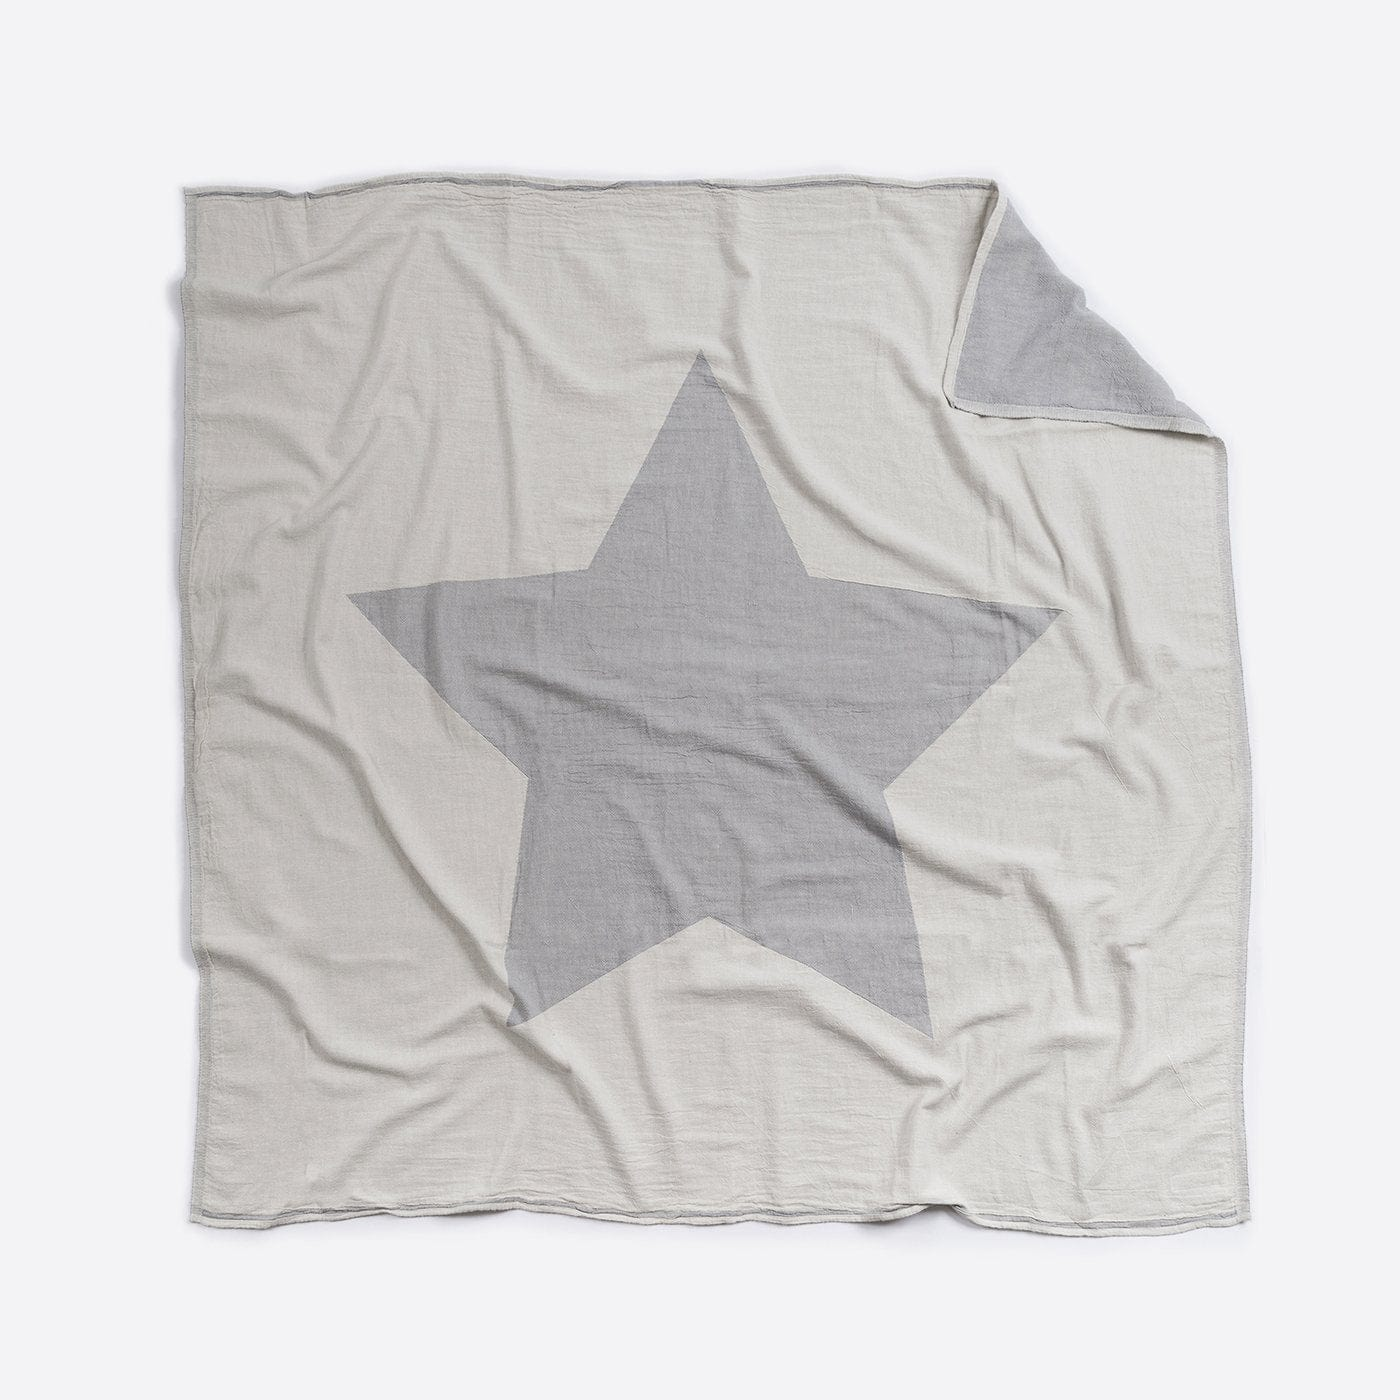 Cotton Blanket - Cot / Single Bed : Star Blanket North Star Baby